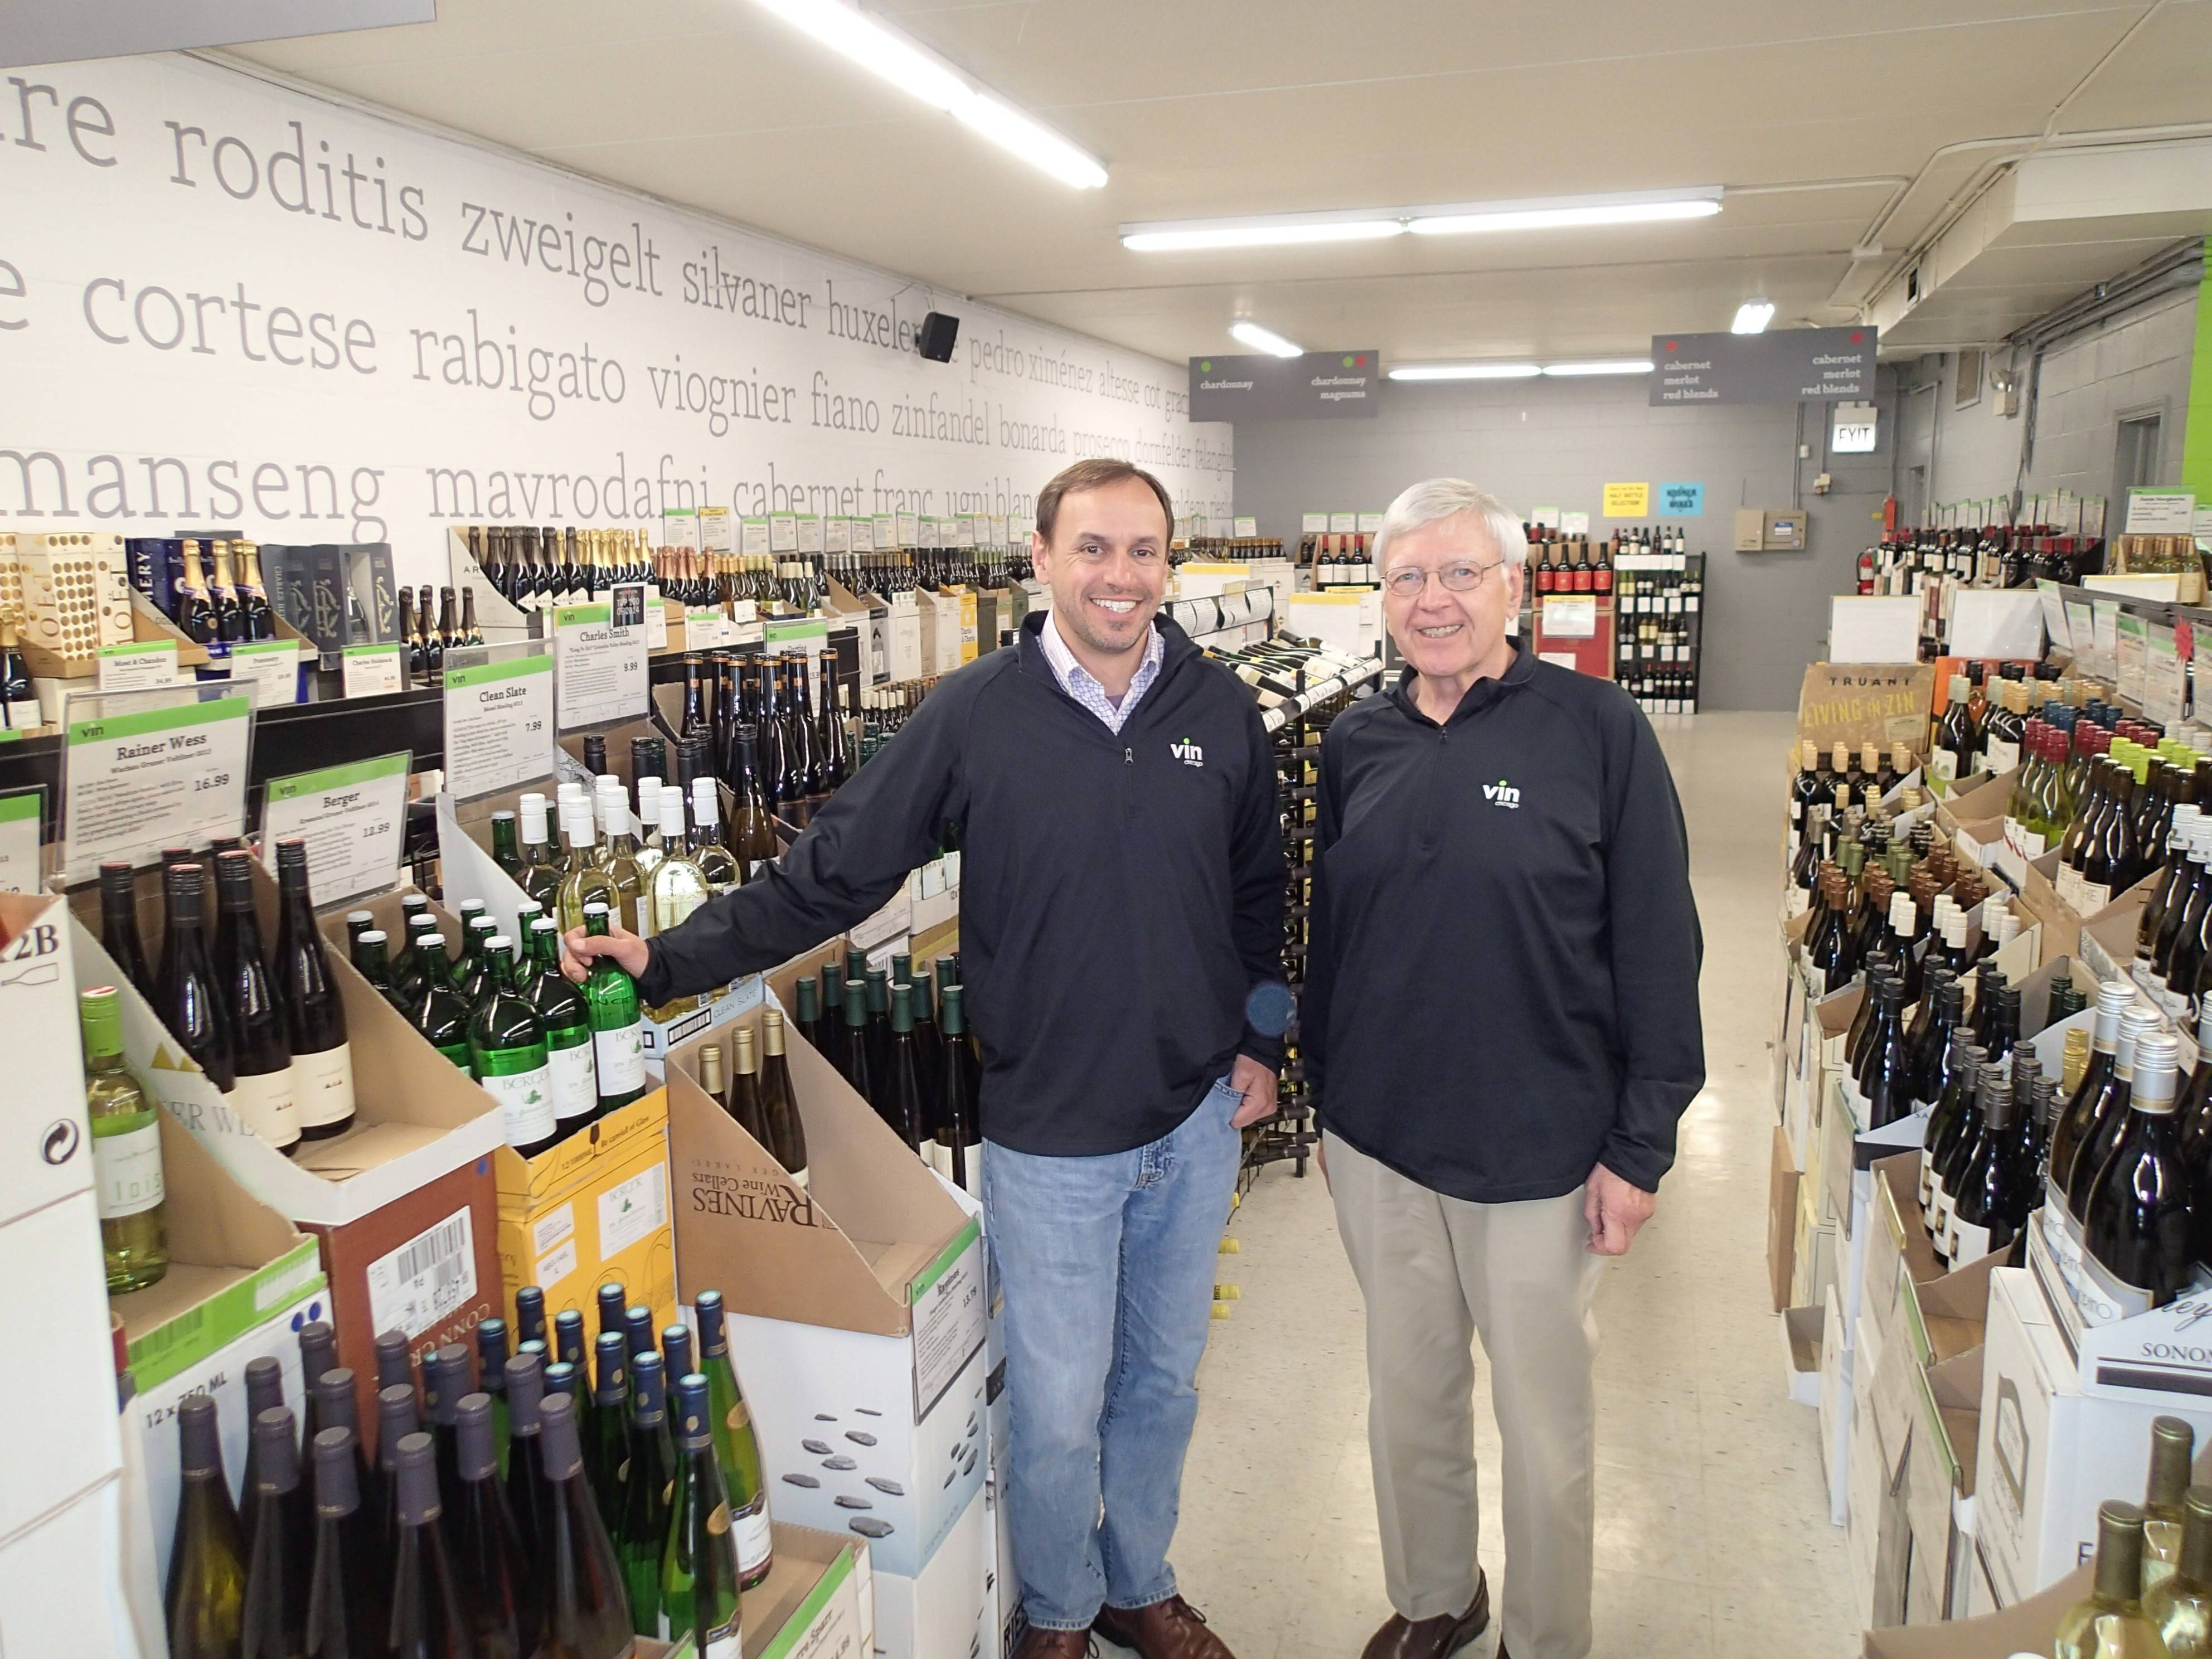 Peter Schwarzbach, at left, owns and manages Vin Chicago, which was founded by his father Bud Schwarzbach.